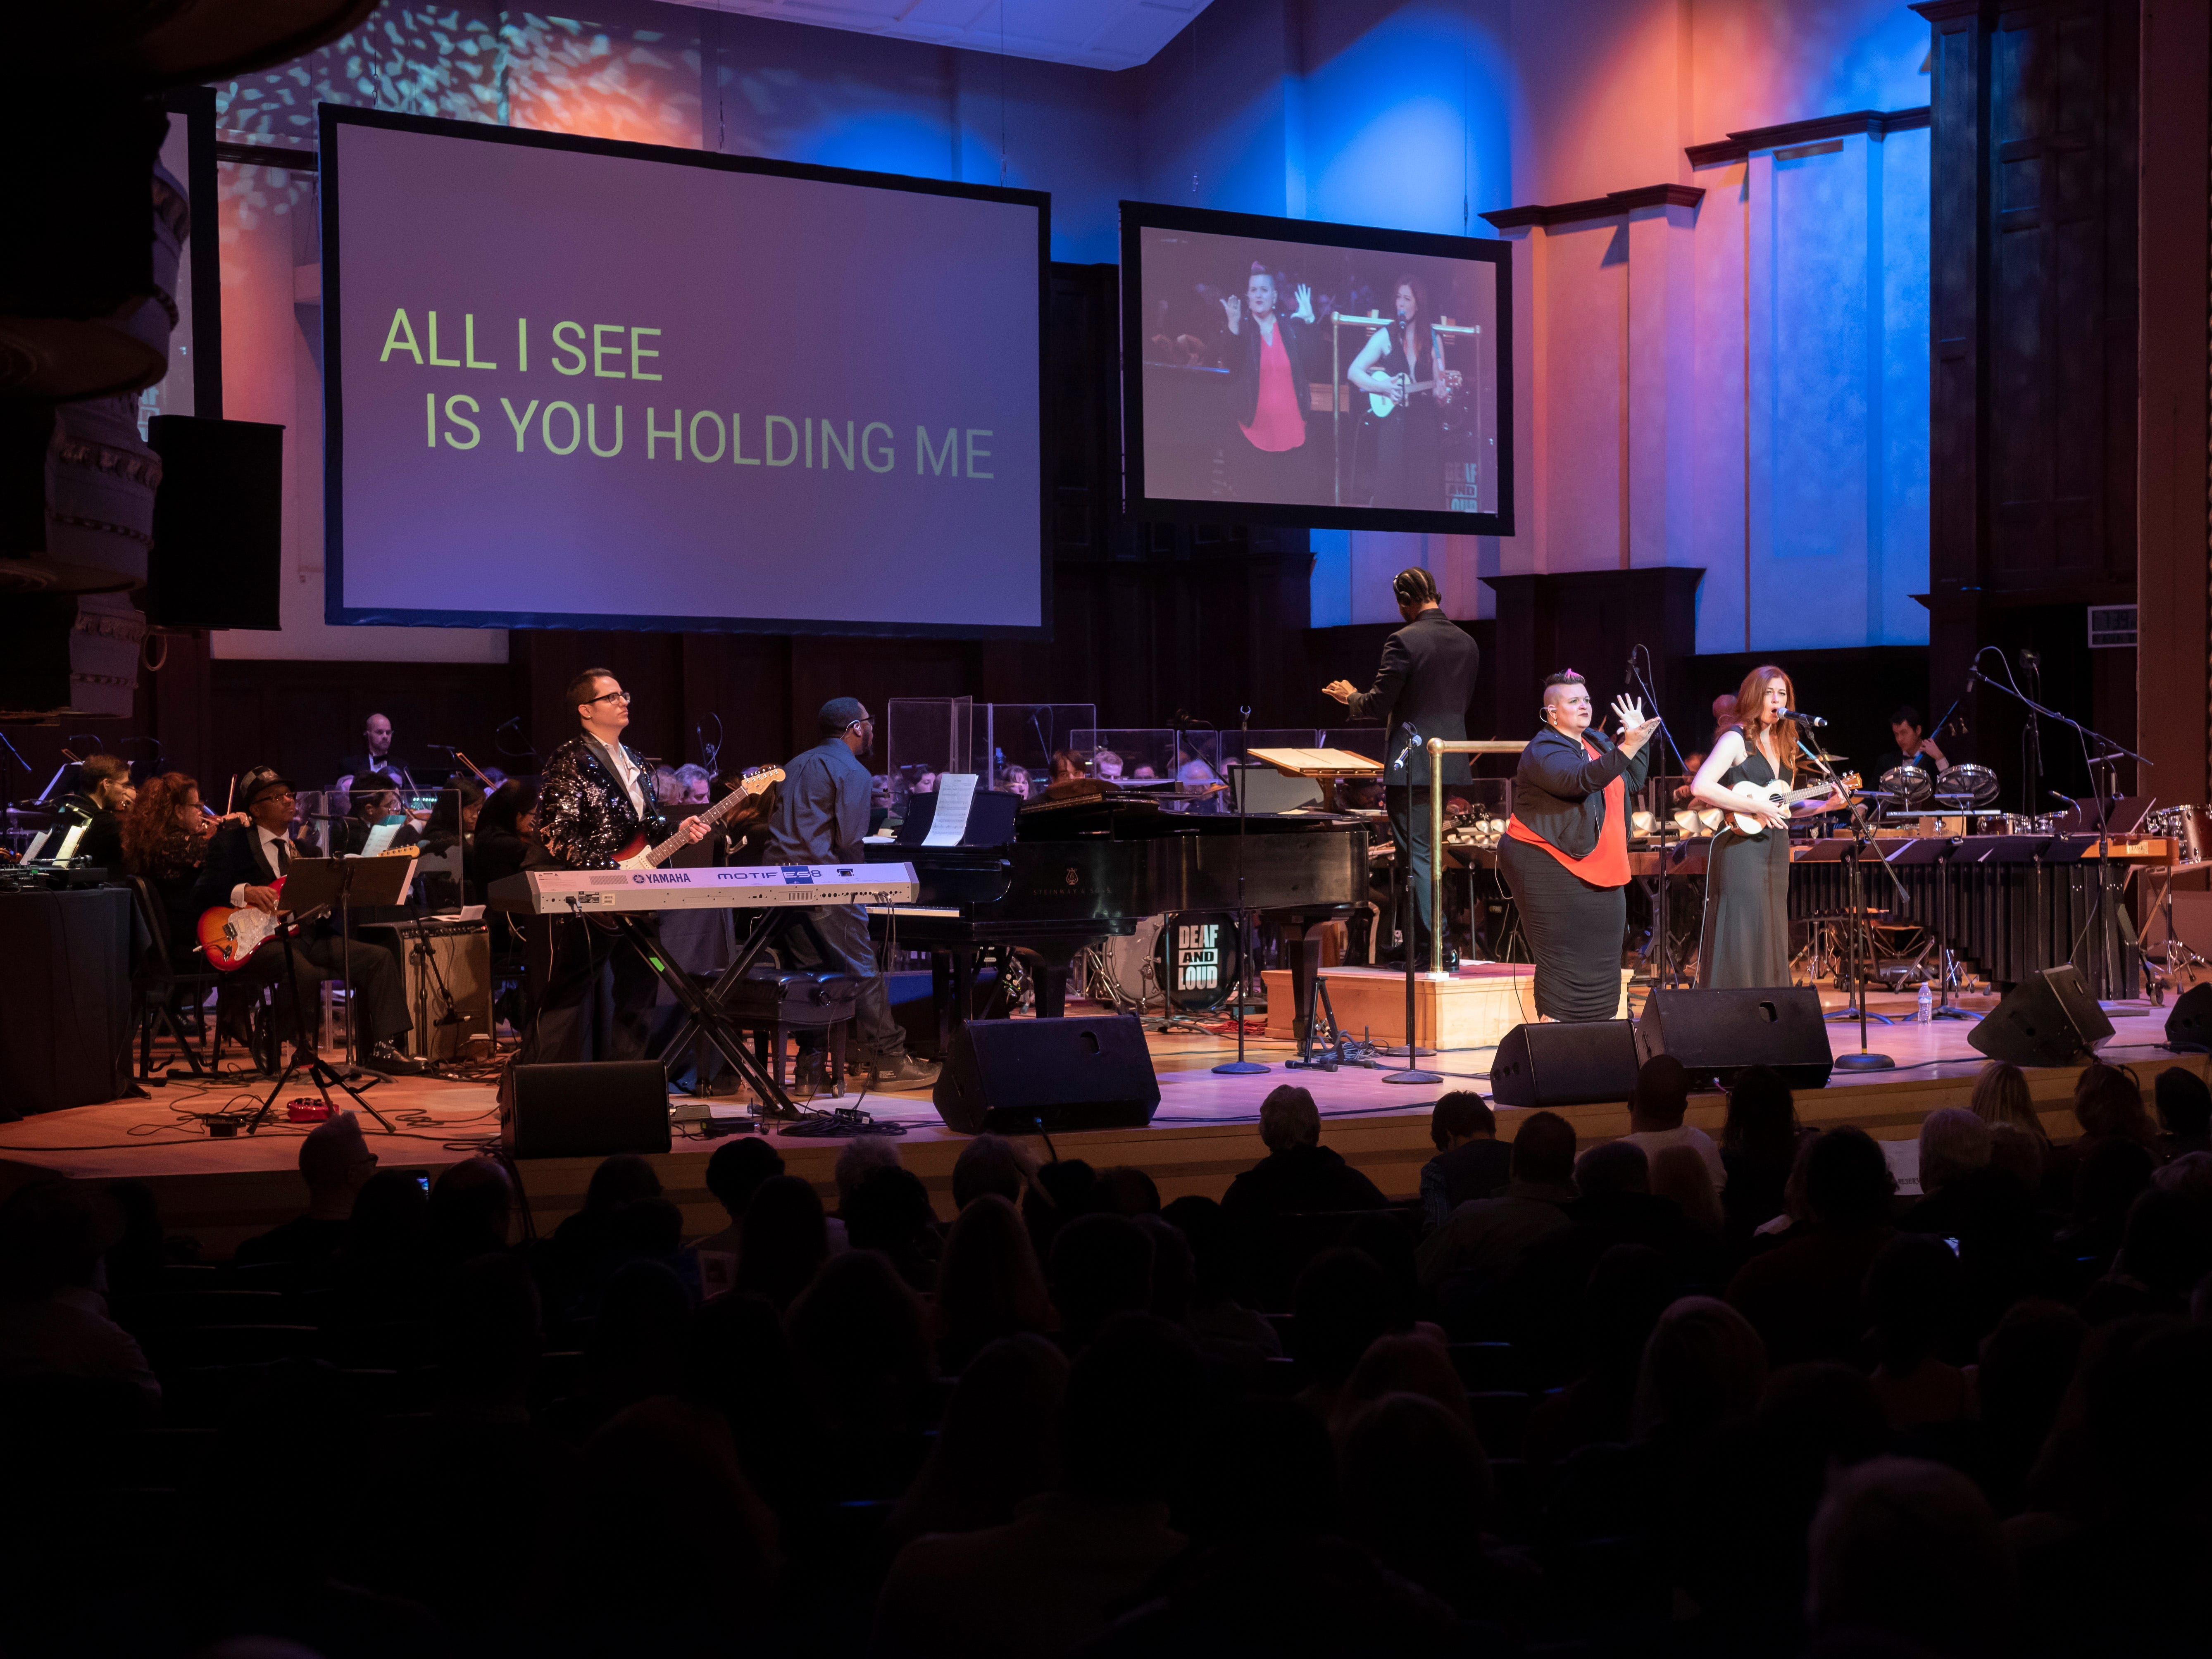 ASL performer Amber Galloway Gallego, left, and musician Mandy Harvey perform during the Deaf and Loud Symphonic Experience at the Detroit Symphony Orchestra, December 16, 2018. Deaf artists and the DSO performed a combination of contemporary and orchestral music in American Sign Language with lyrics projected for each song.